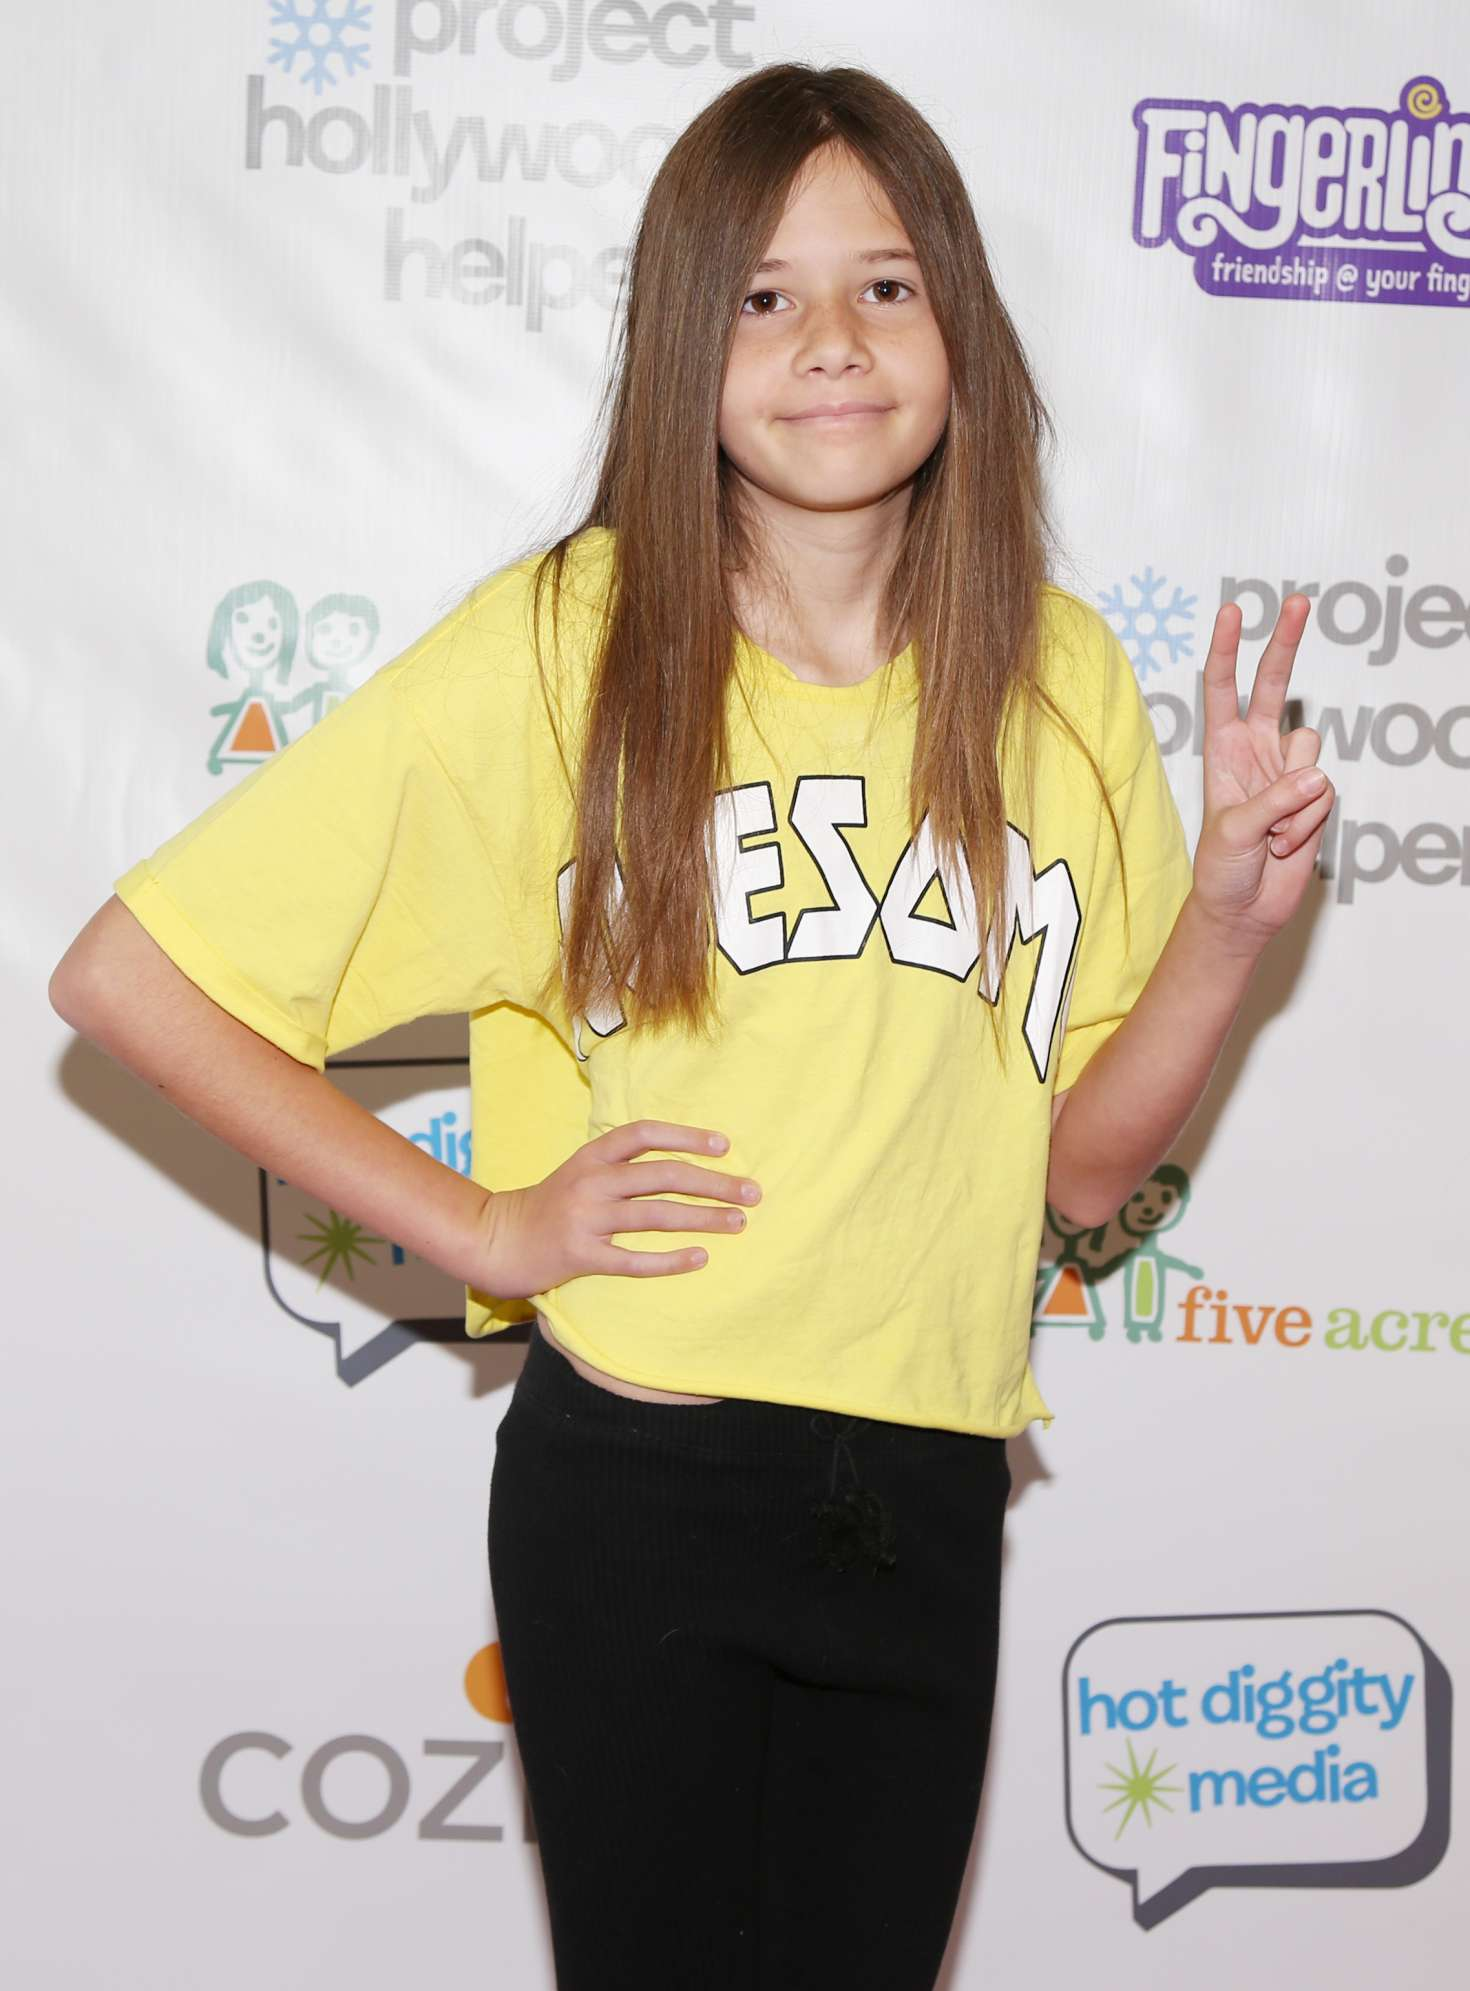 Avery Hand - Project Hollywood Helpers Event in Los Angeles